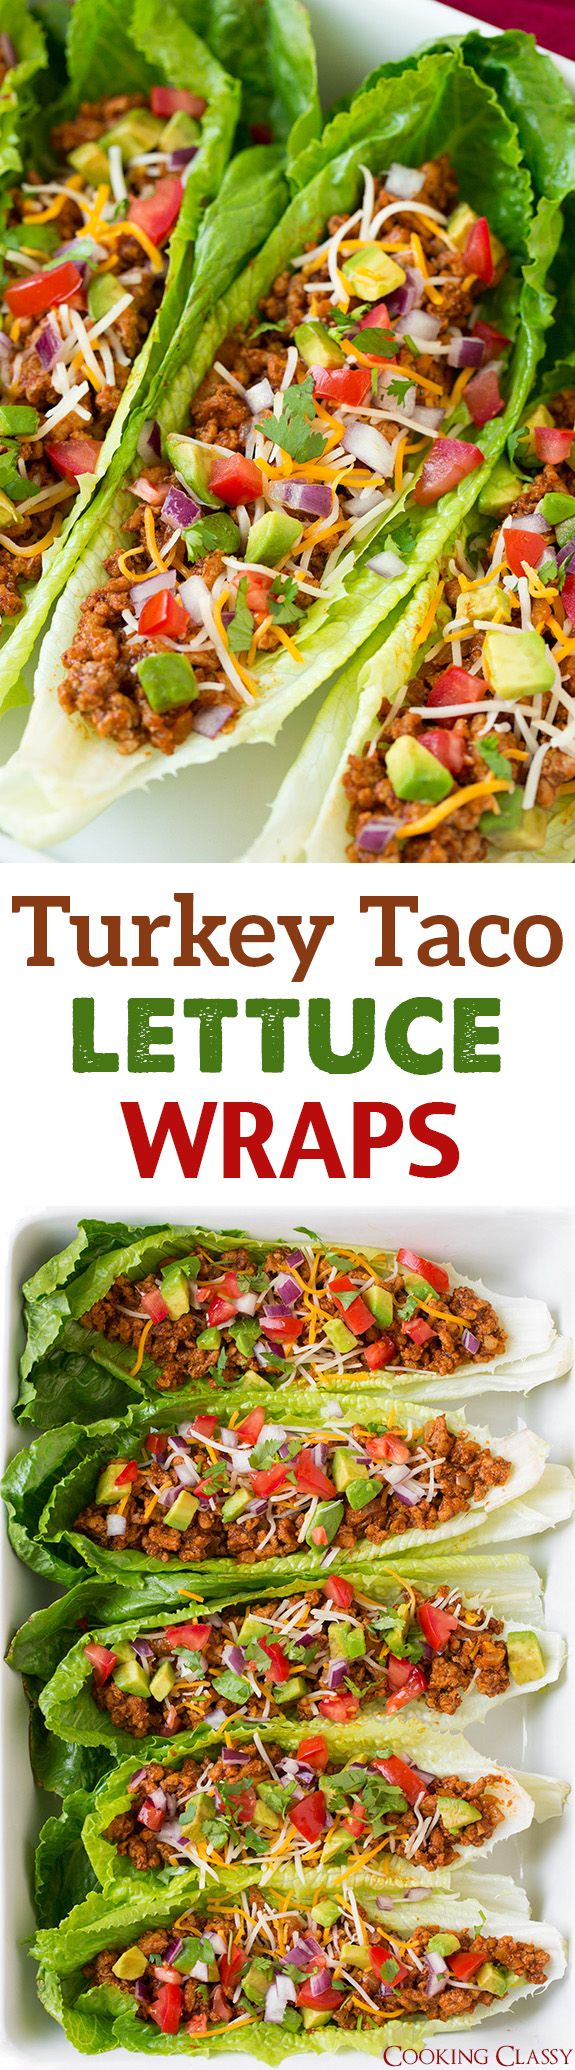 Wraps Turkey tiger Taco Lettuce Recipe and onitsuka wikipedia historia     Lettuce Lettuce Wraps Taco Turkey Wraps  Tacos